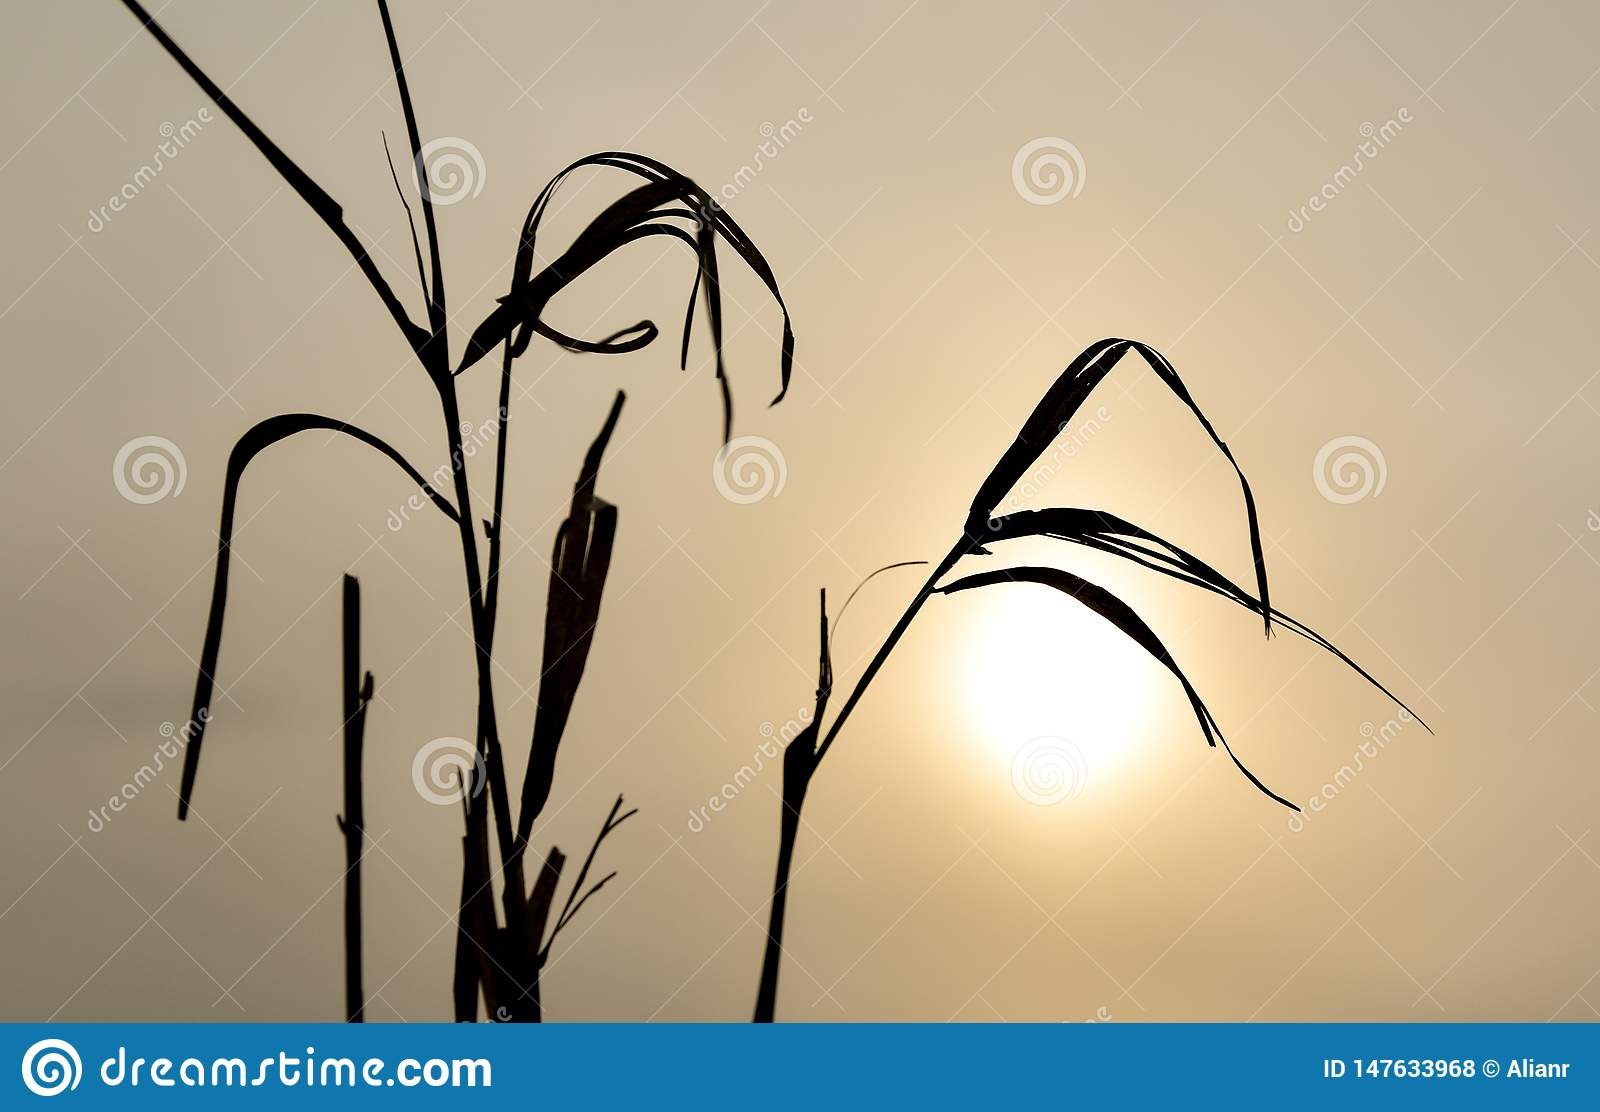 Sillouhette of the dry grass during the sunset on a cloudy foggy day